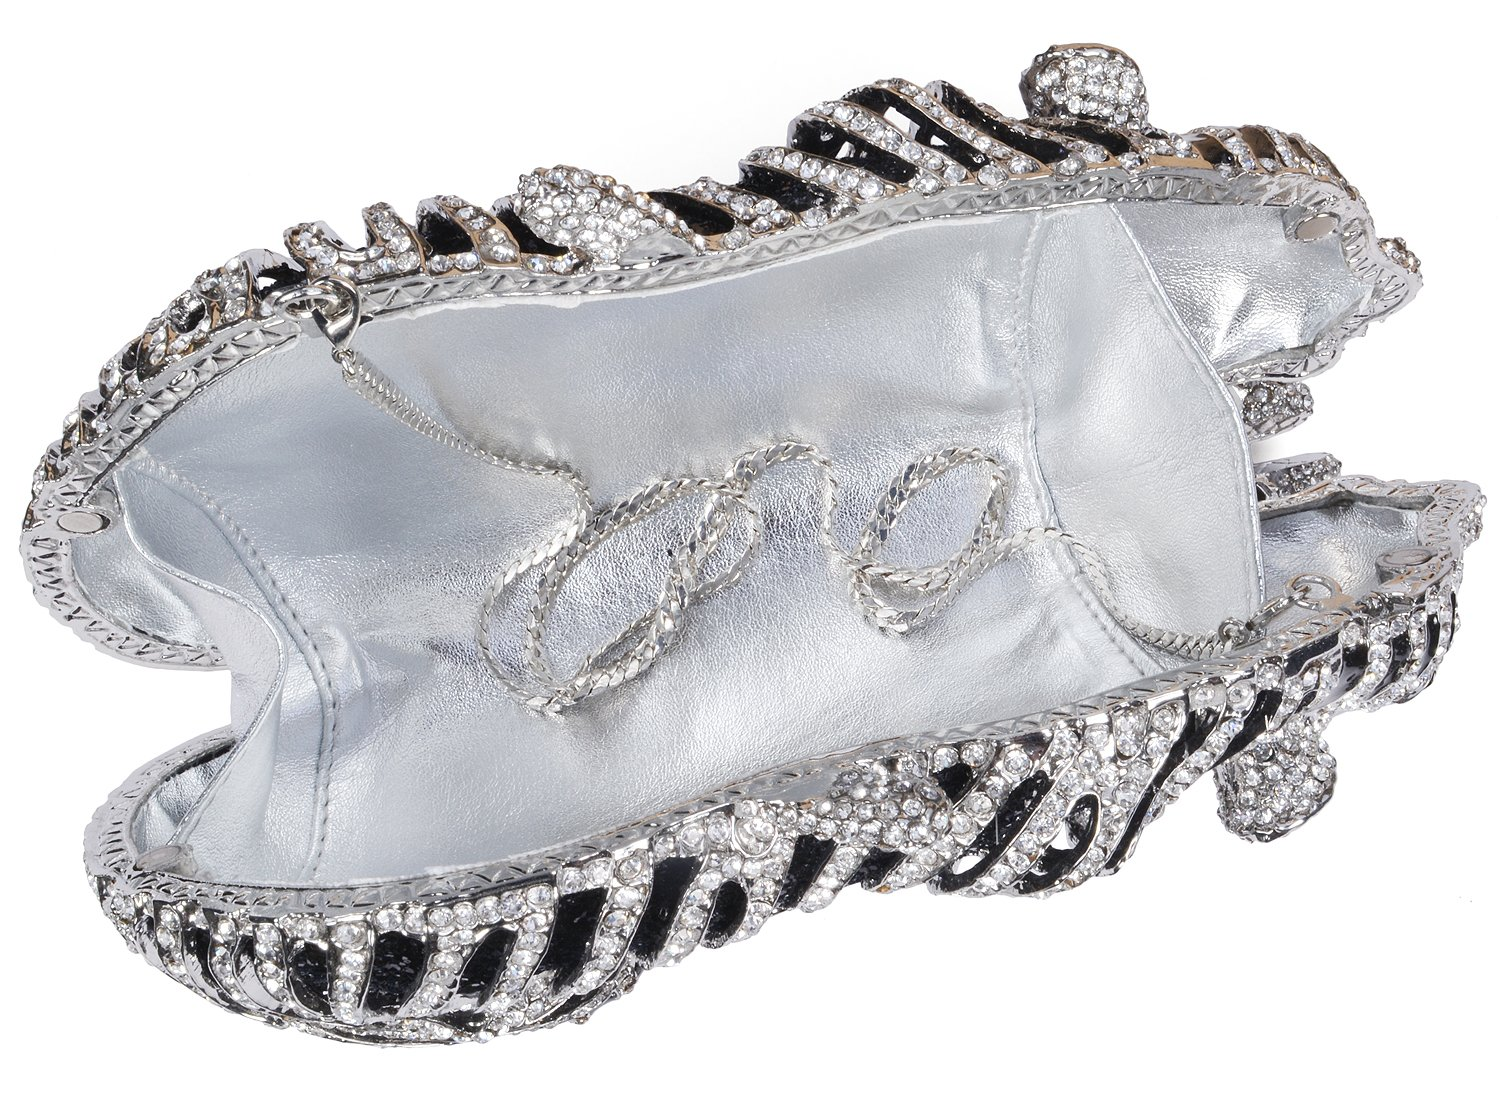 mossmon Luxury Crystal Clutches For Women Tiger Evening Bag (Silver) by Mossmon (Image #4)